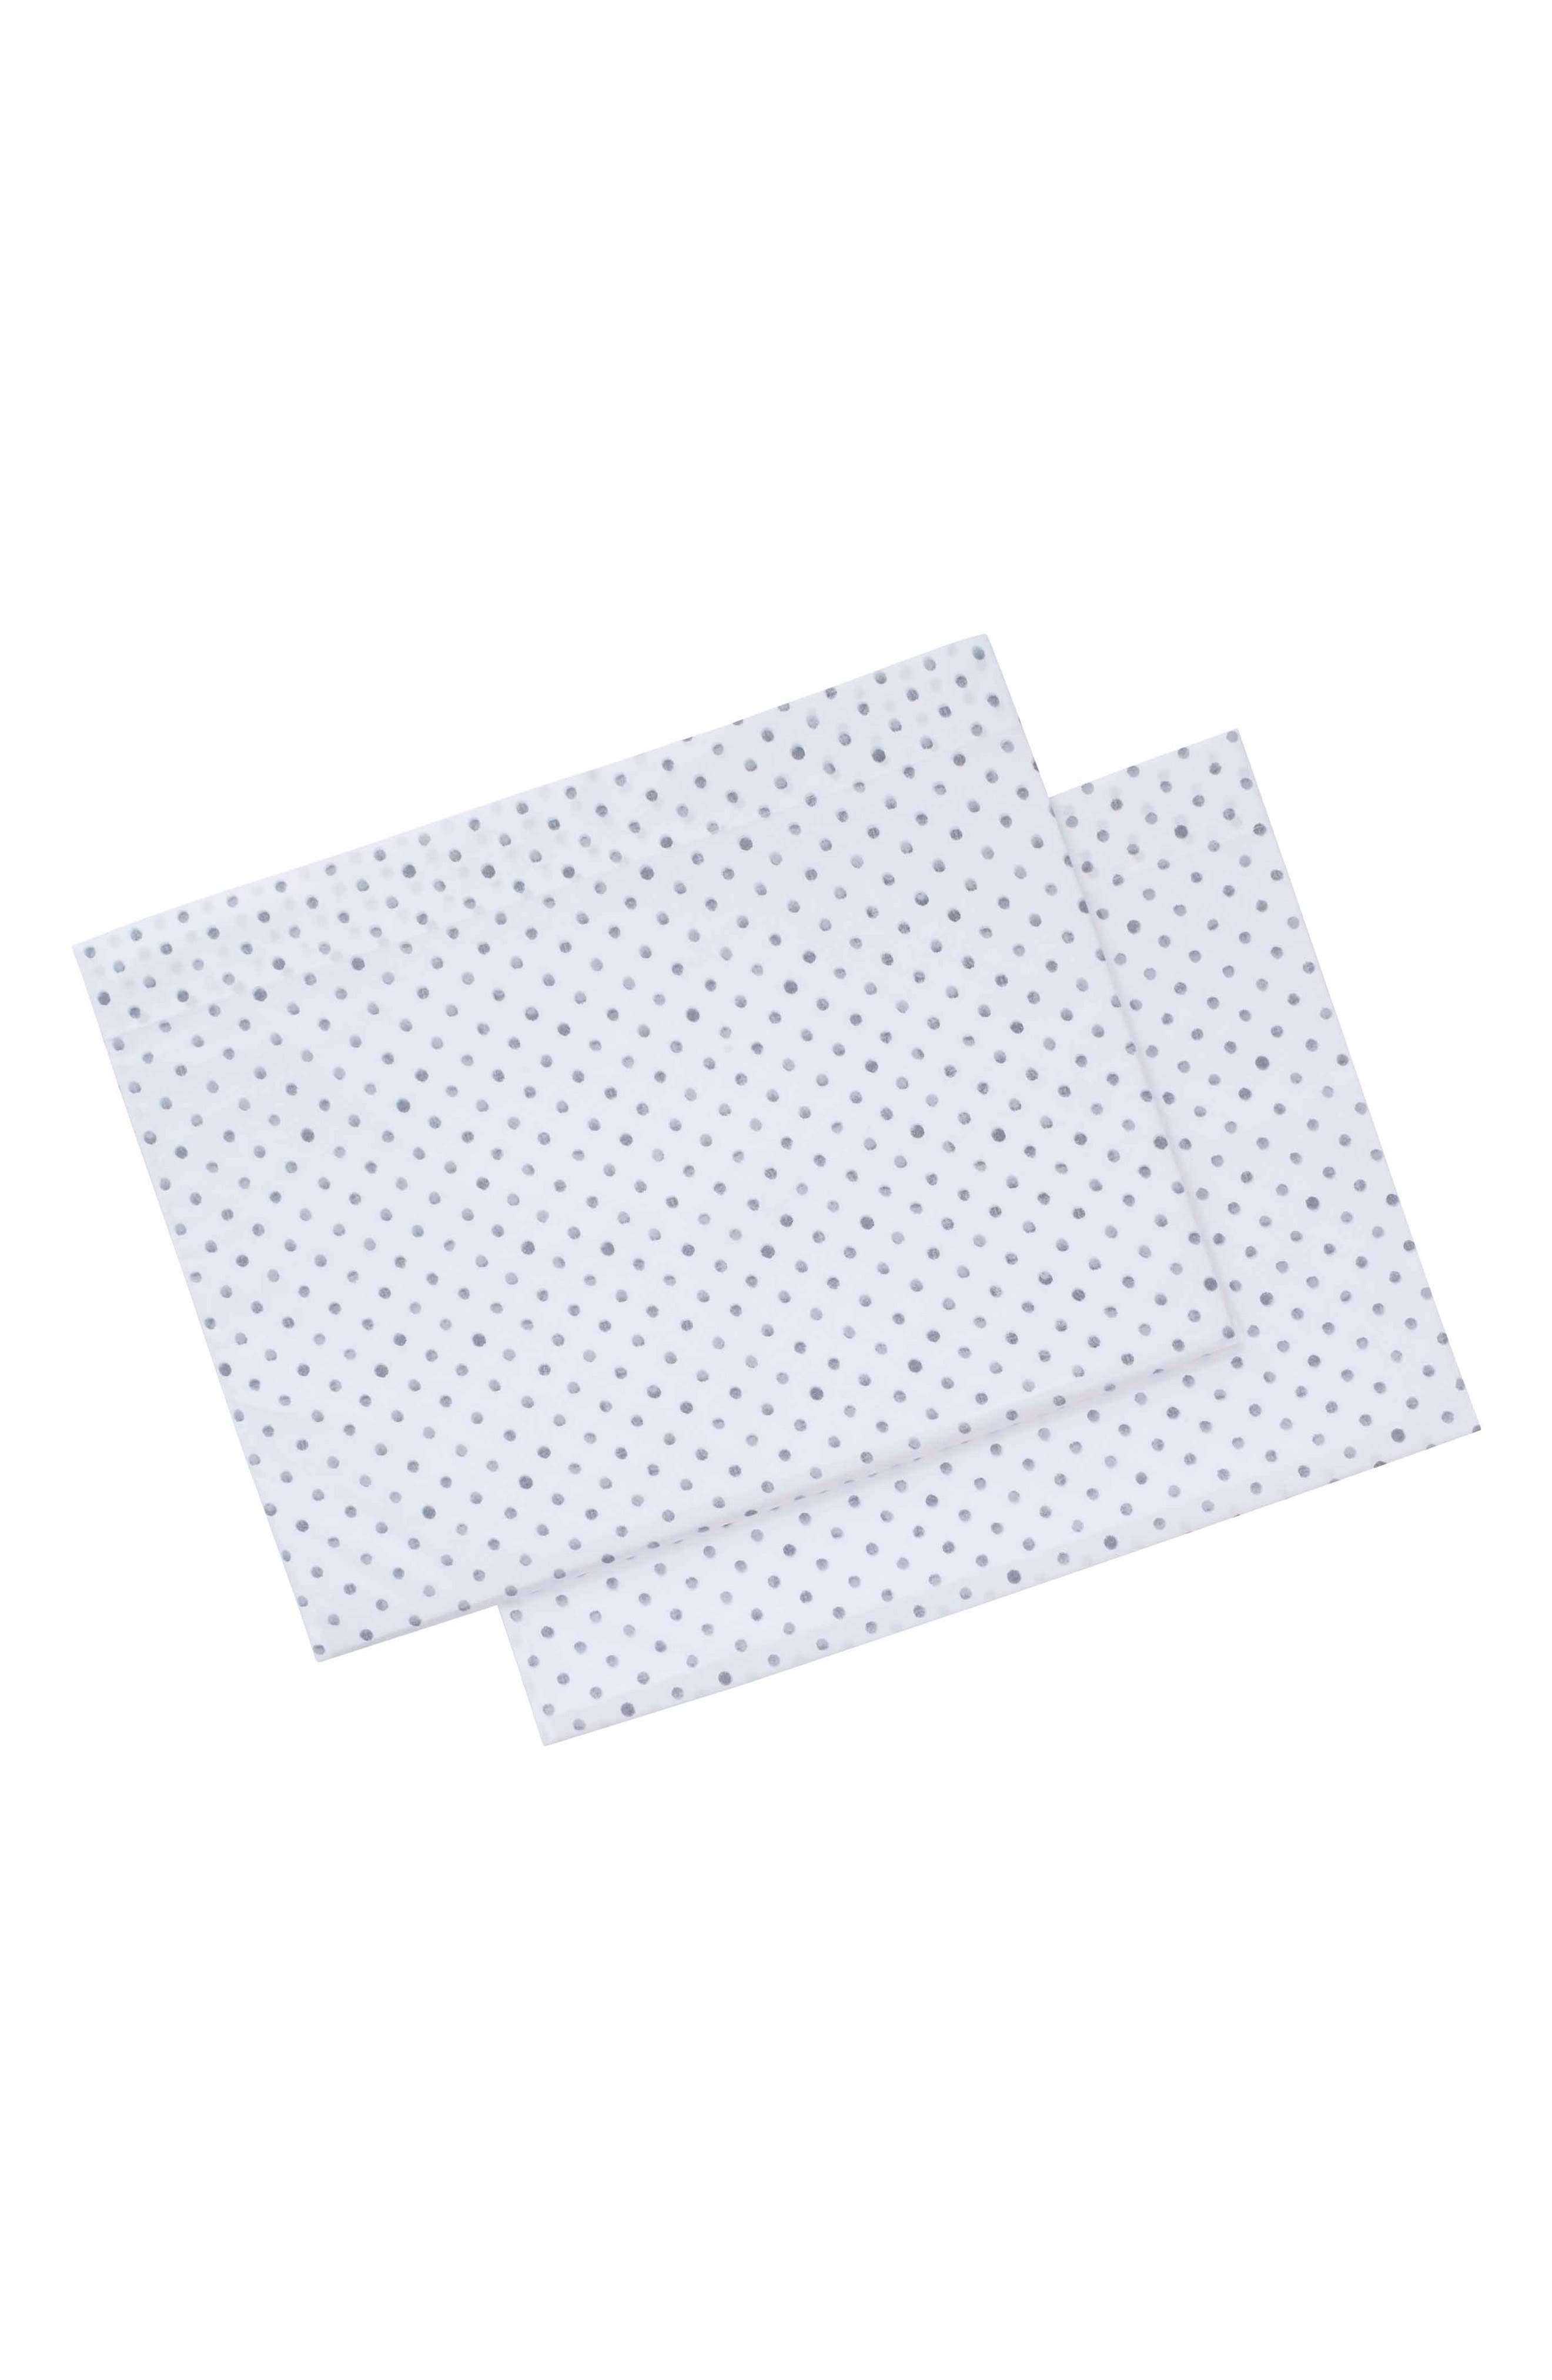 ED ELLEN DEGENERES, Watercolor Dots Set of 2 Pillowcases, Main thumbnail 1, color, GREY